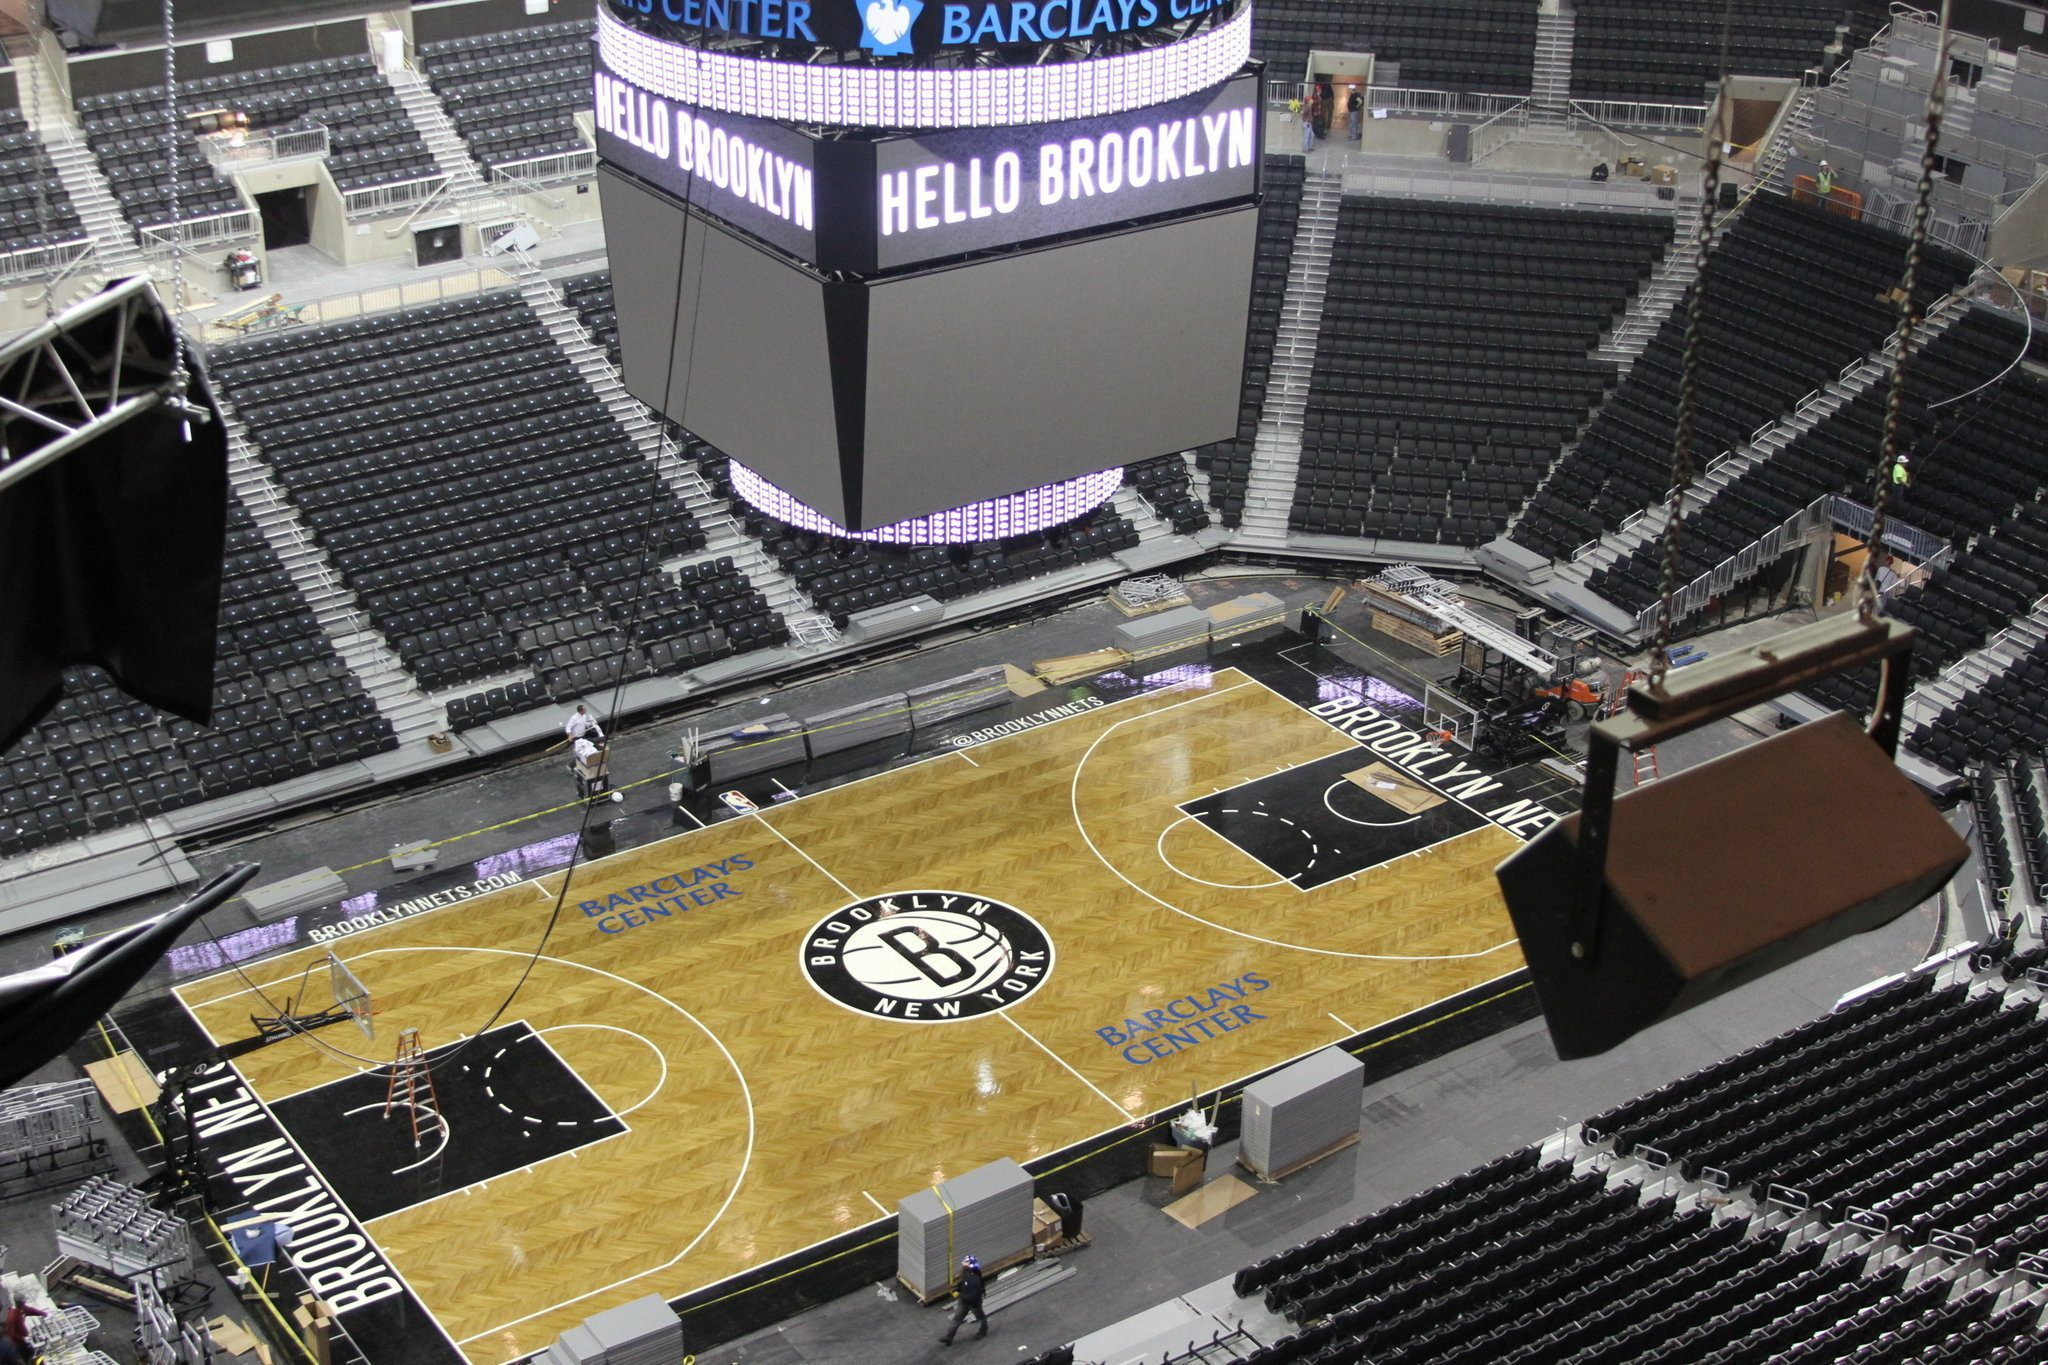 The Barclays Center home of the Brooklyn Nets